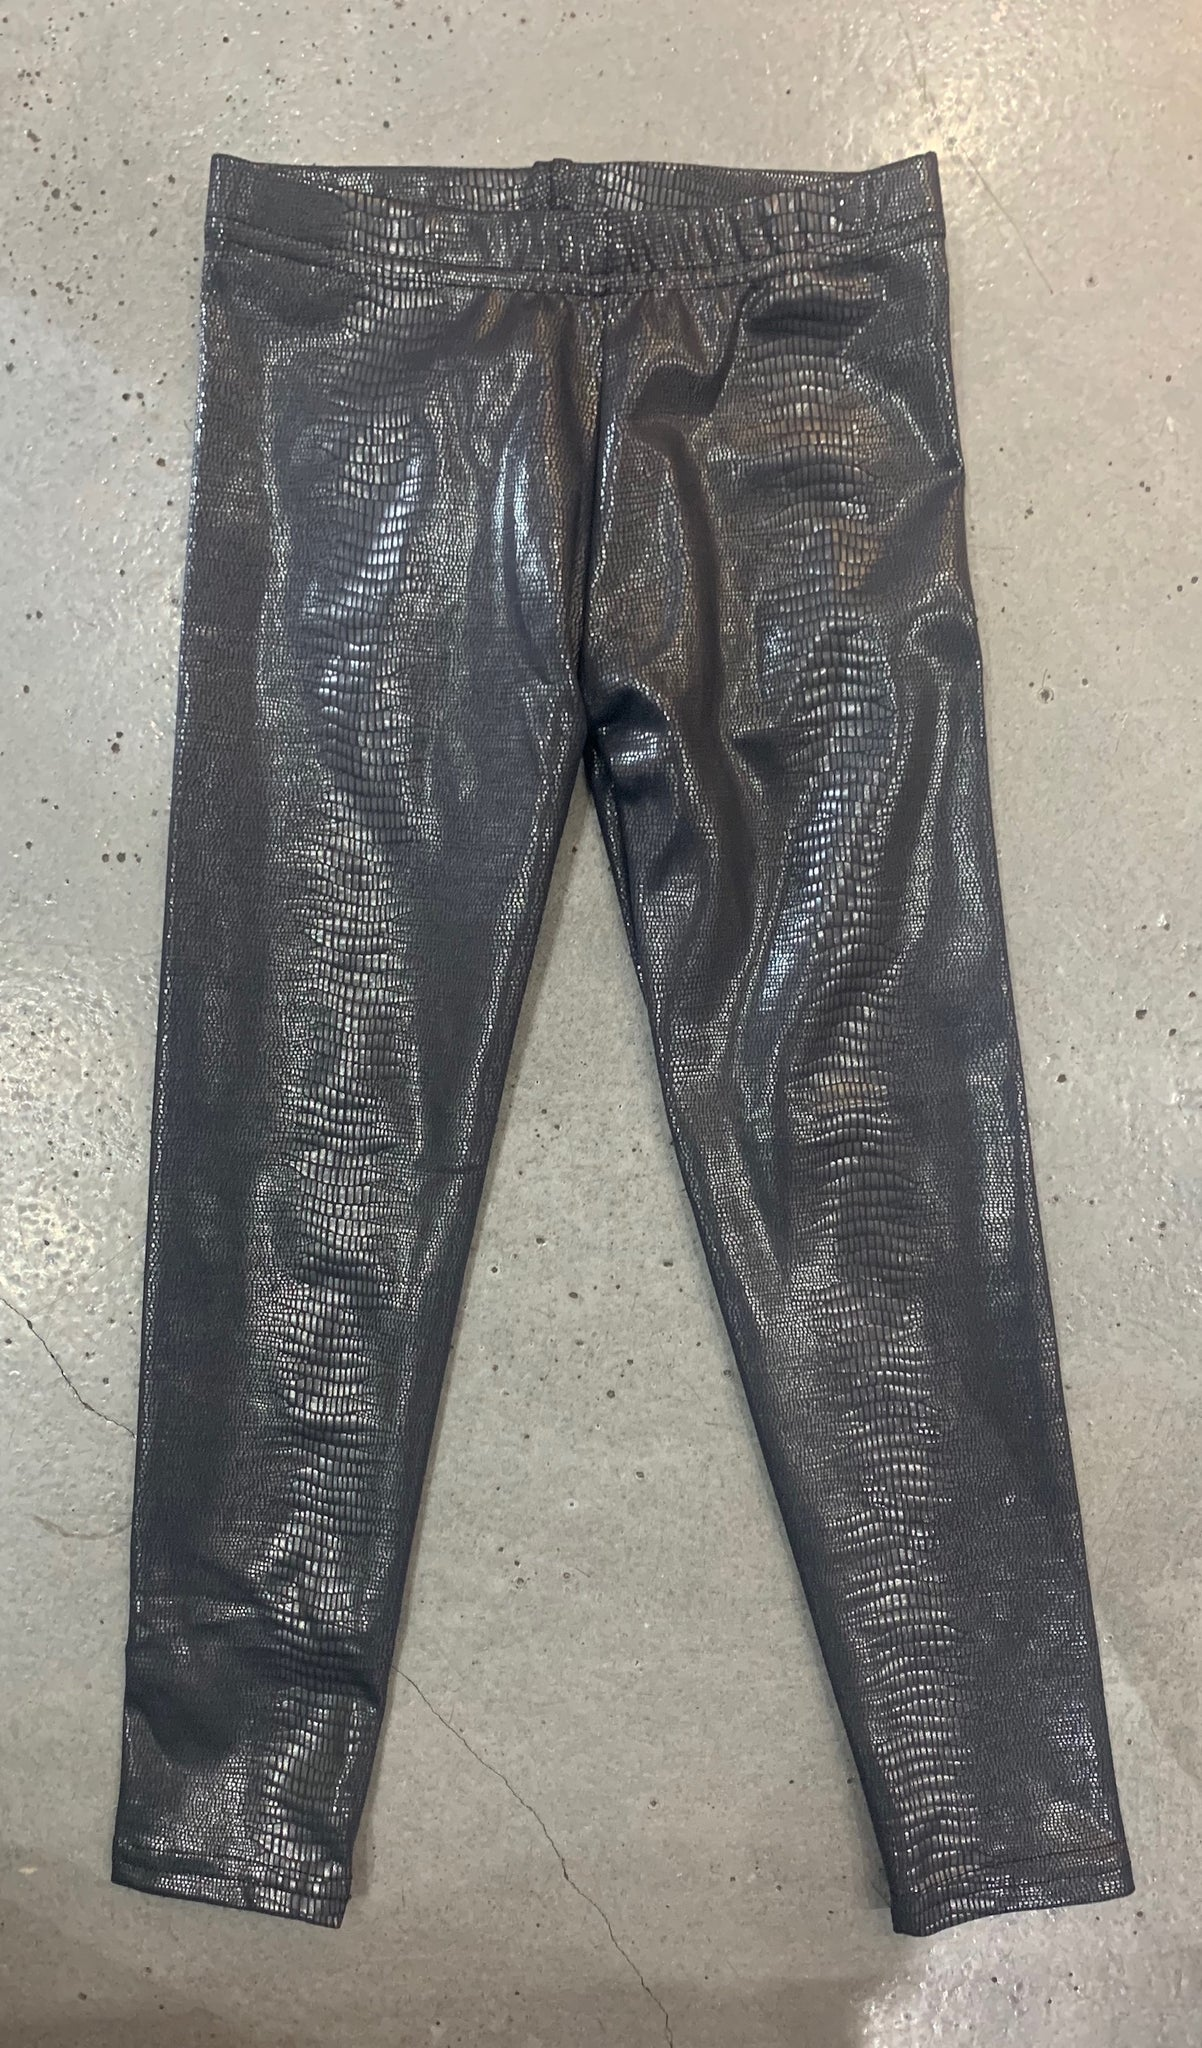 Dori Creations Leggings - Black Snake